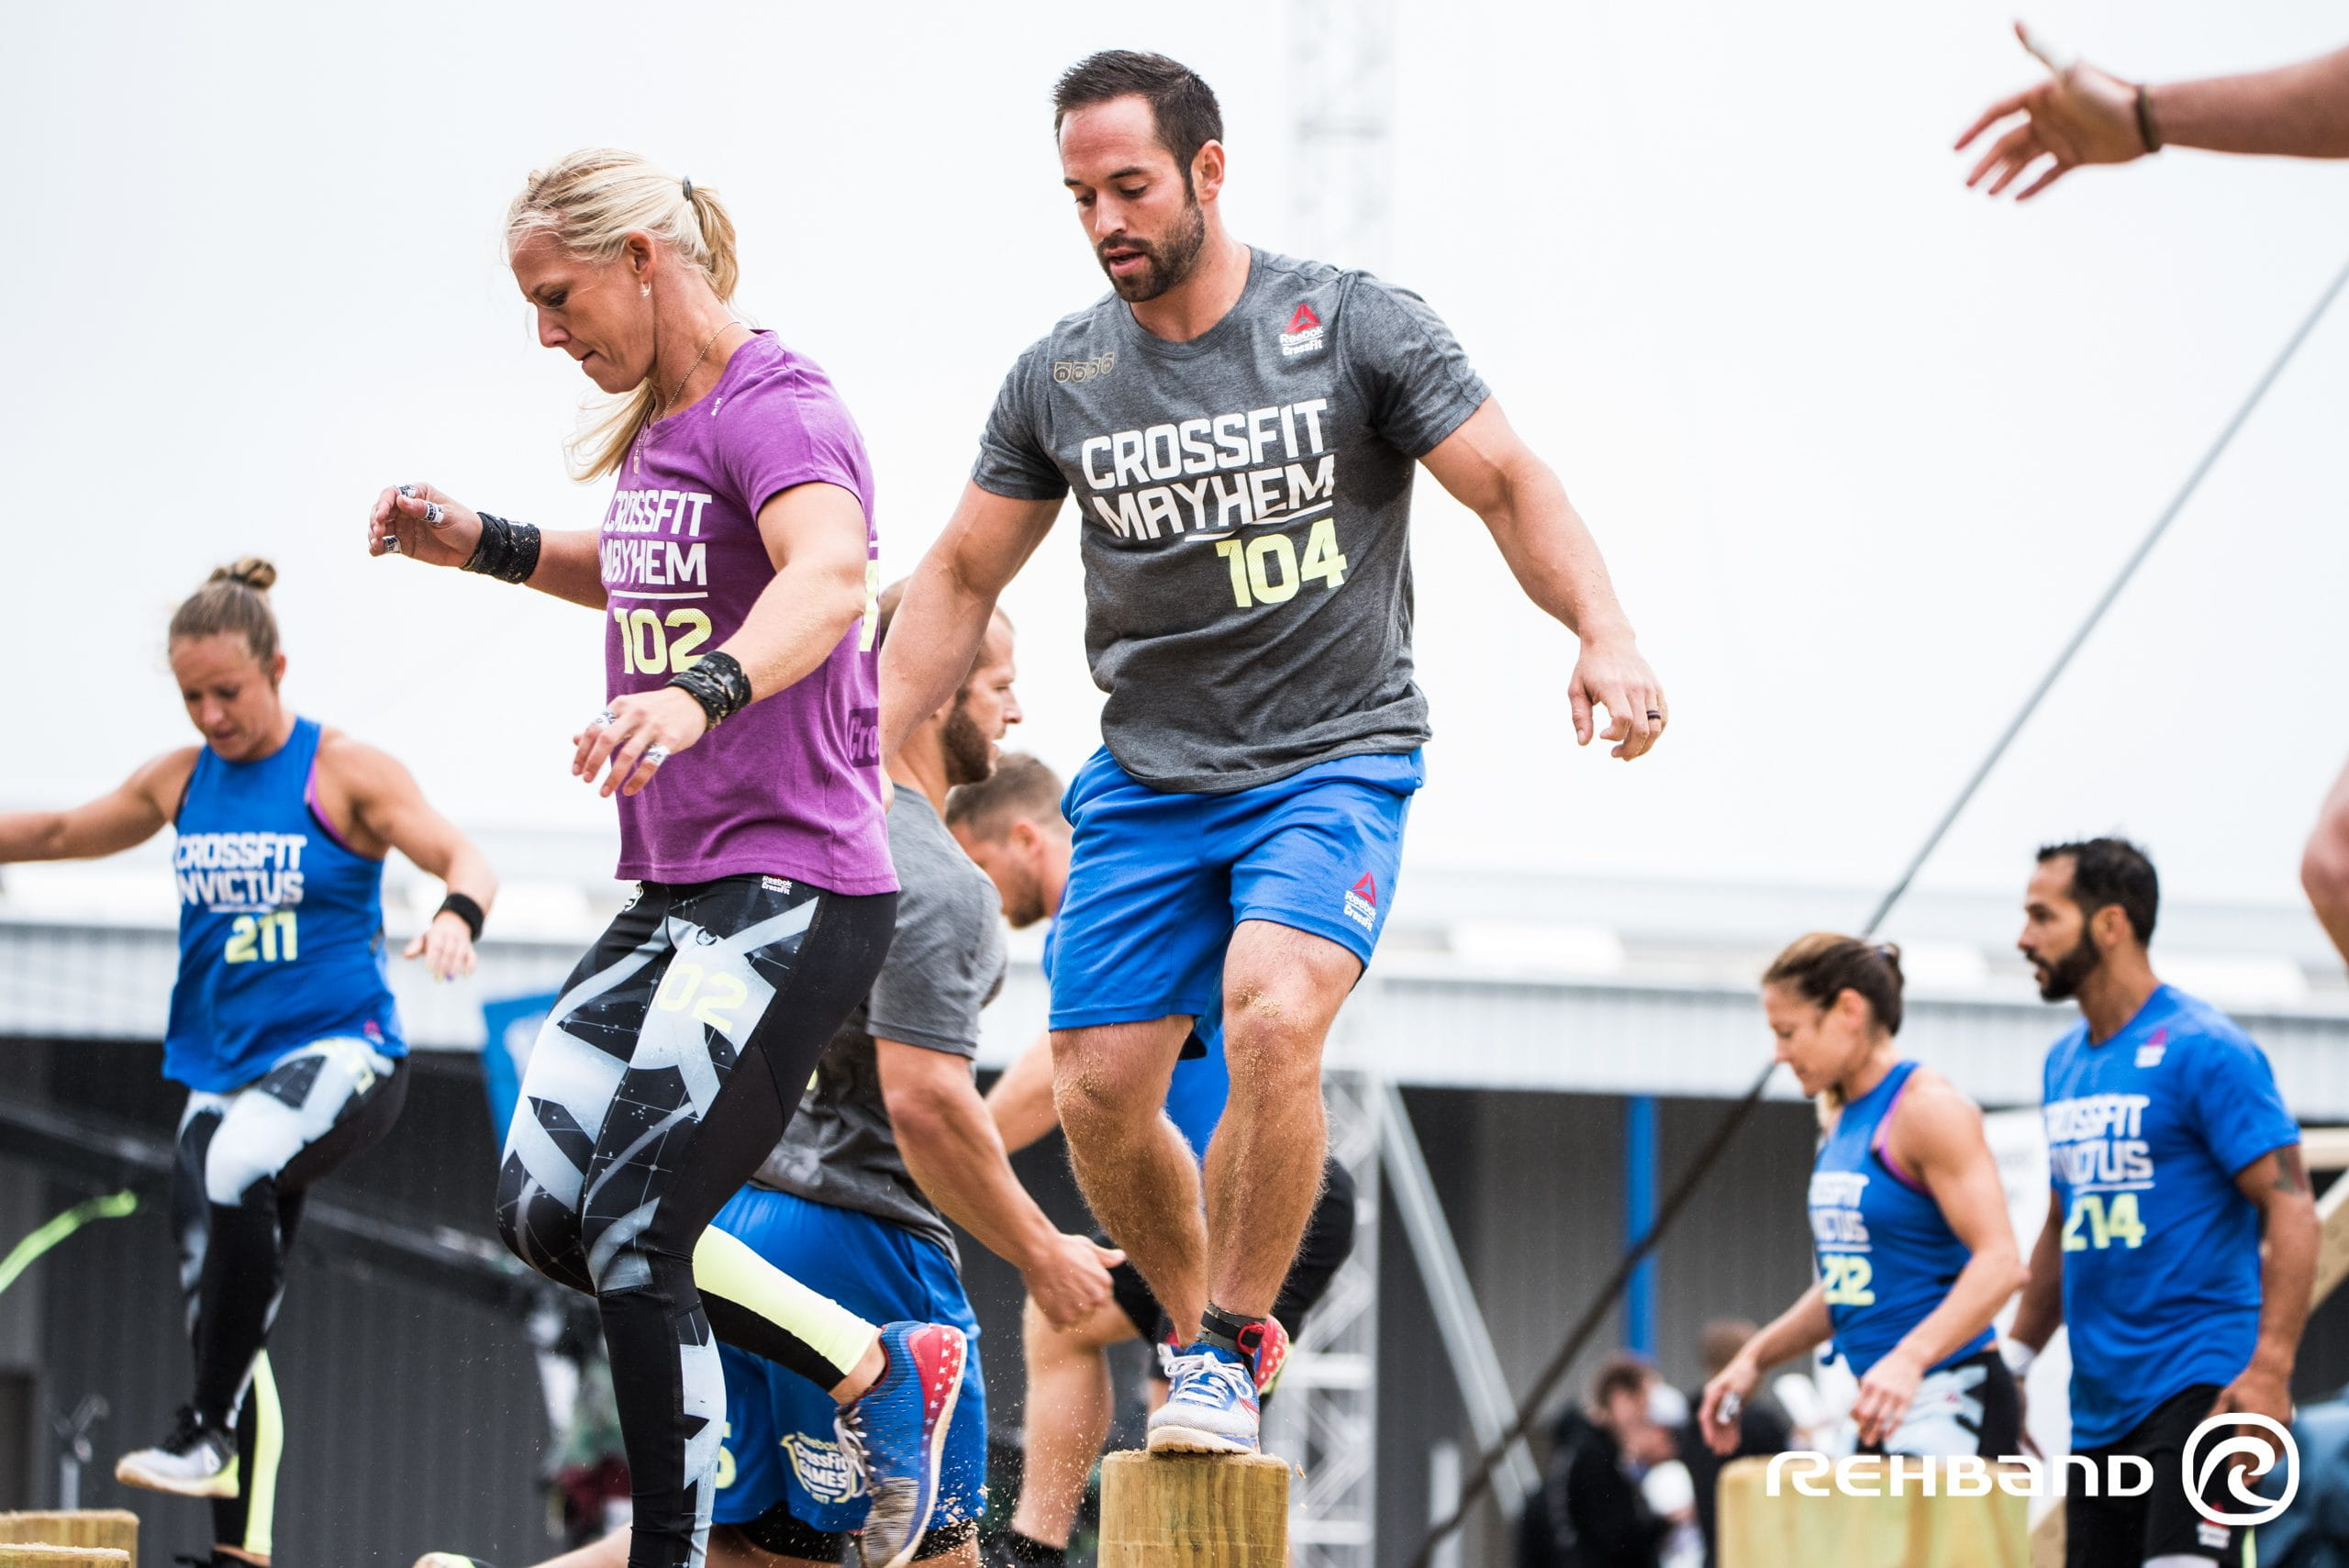 Rich Froning OCR